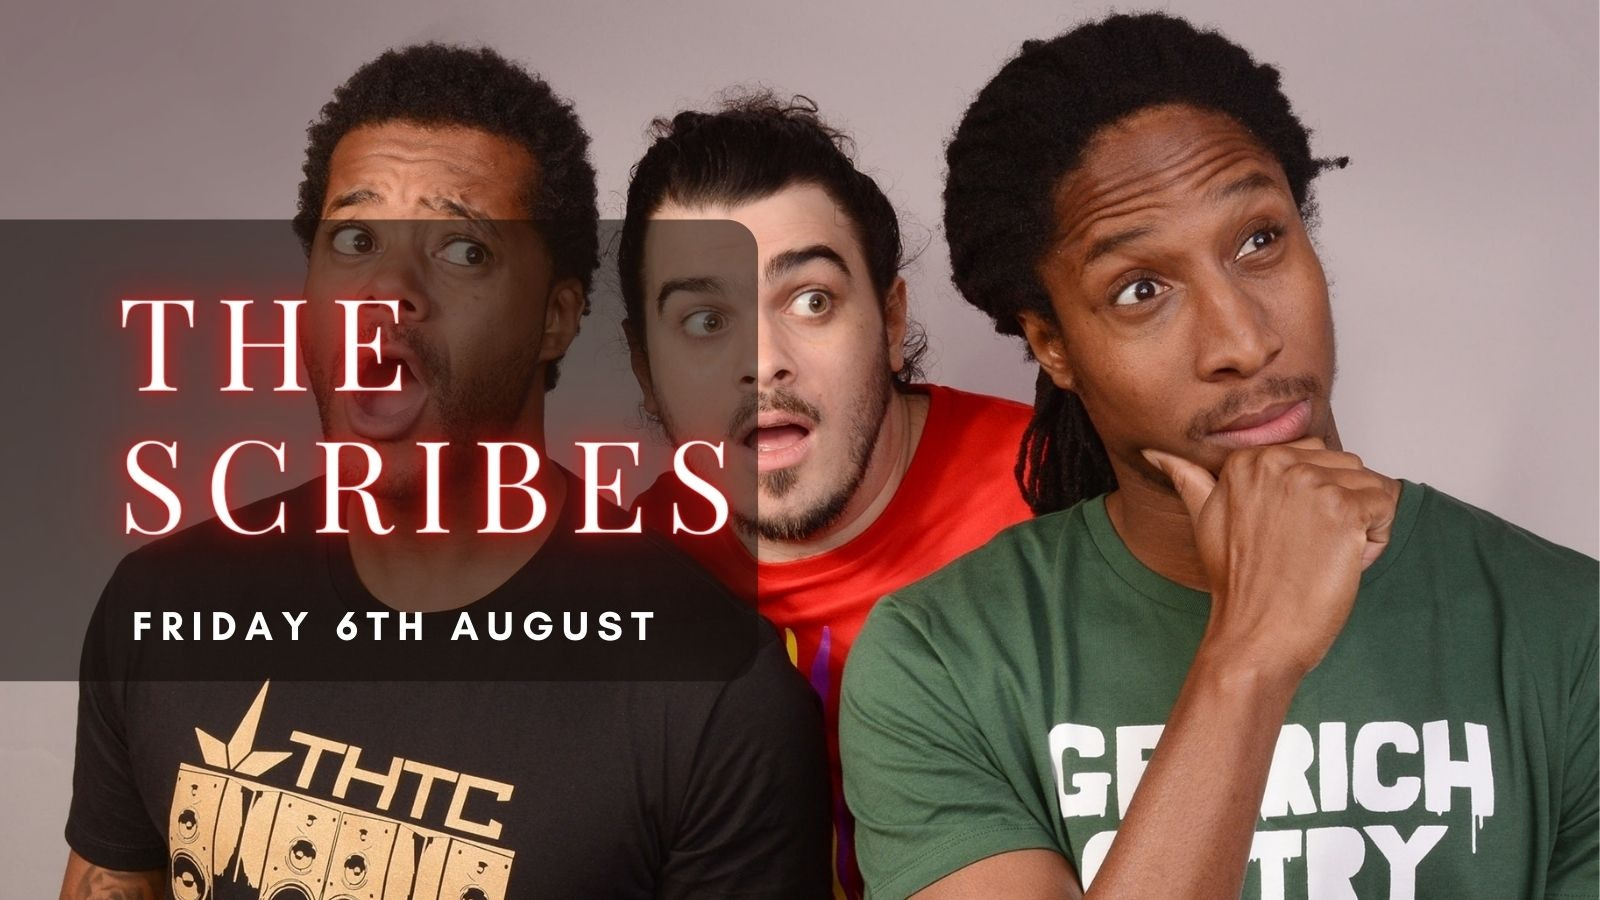 THE SCRIBES | Plymouth, Annabel's Cabaret & Discotheque